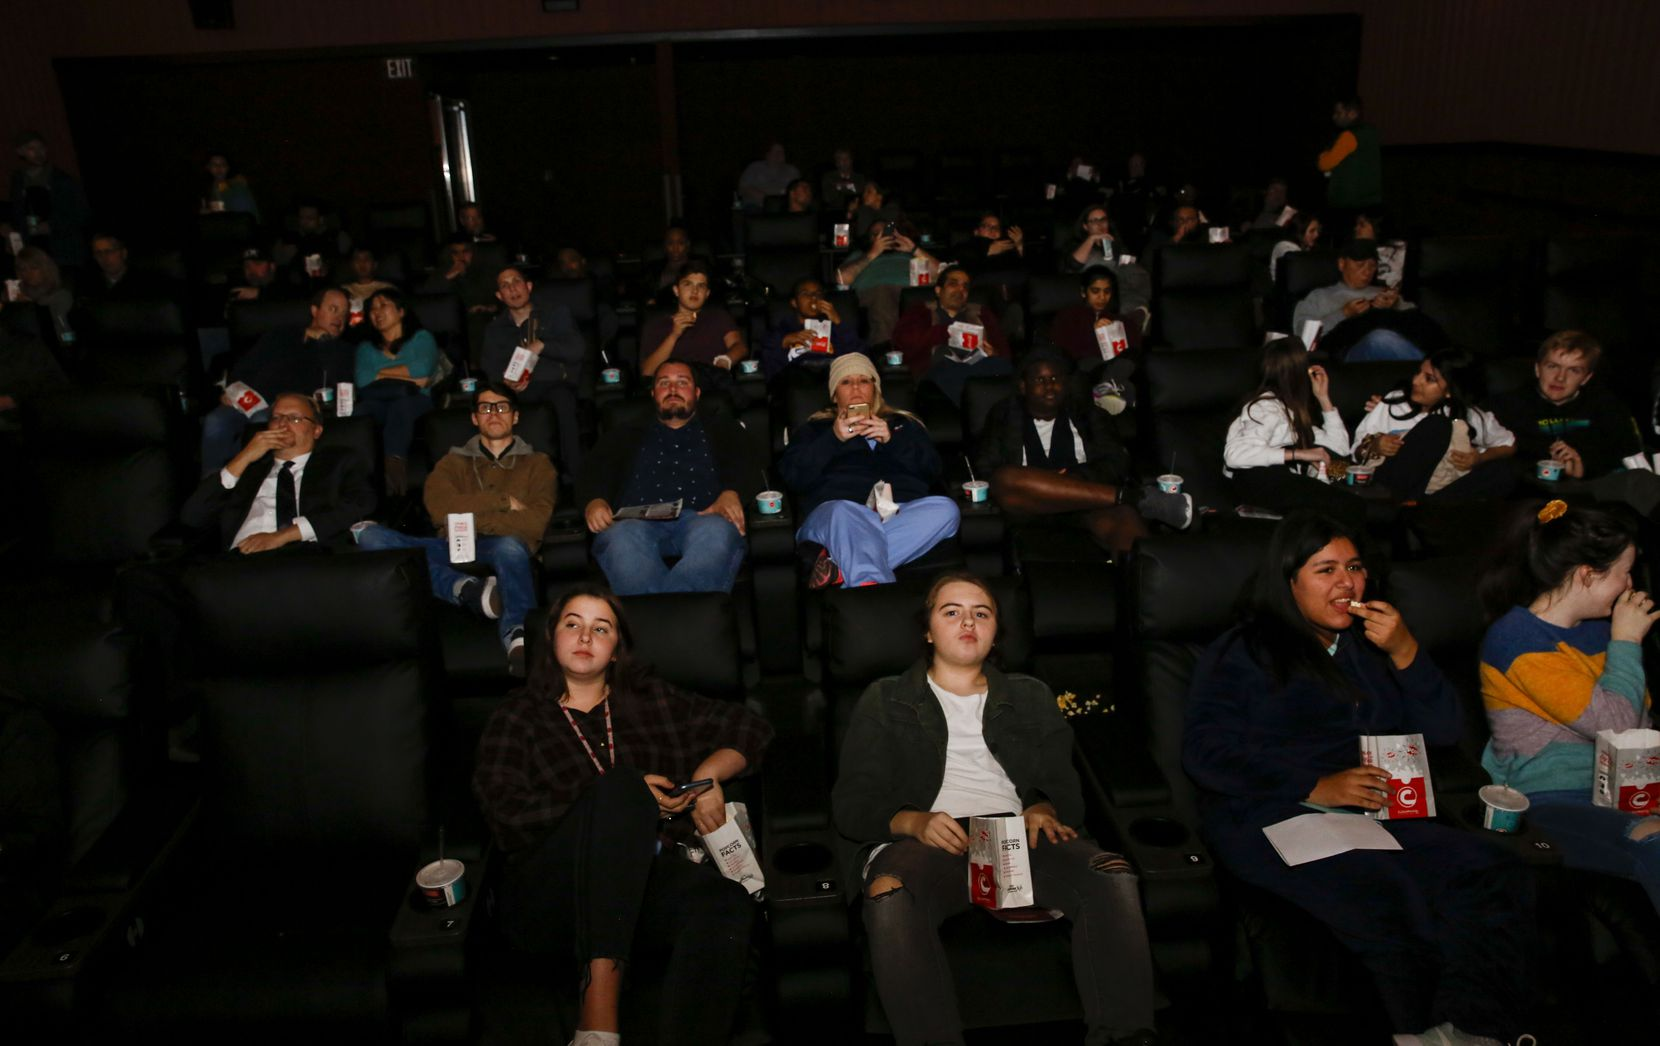 """Guests check out the newly remodeled Cinemark theater in Plano. The longtime """"dollar theater"""" was re-built with reclining chairs and upgraded snack and drink options."""